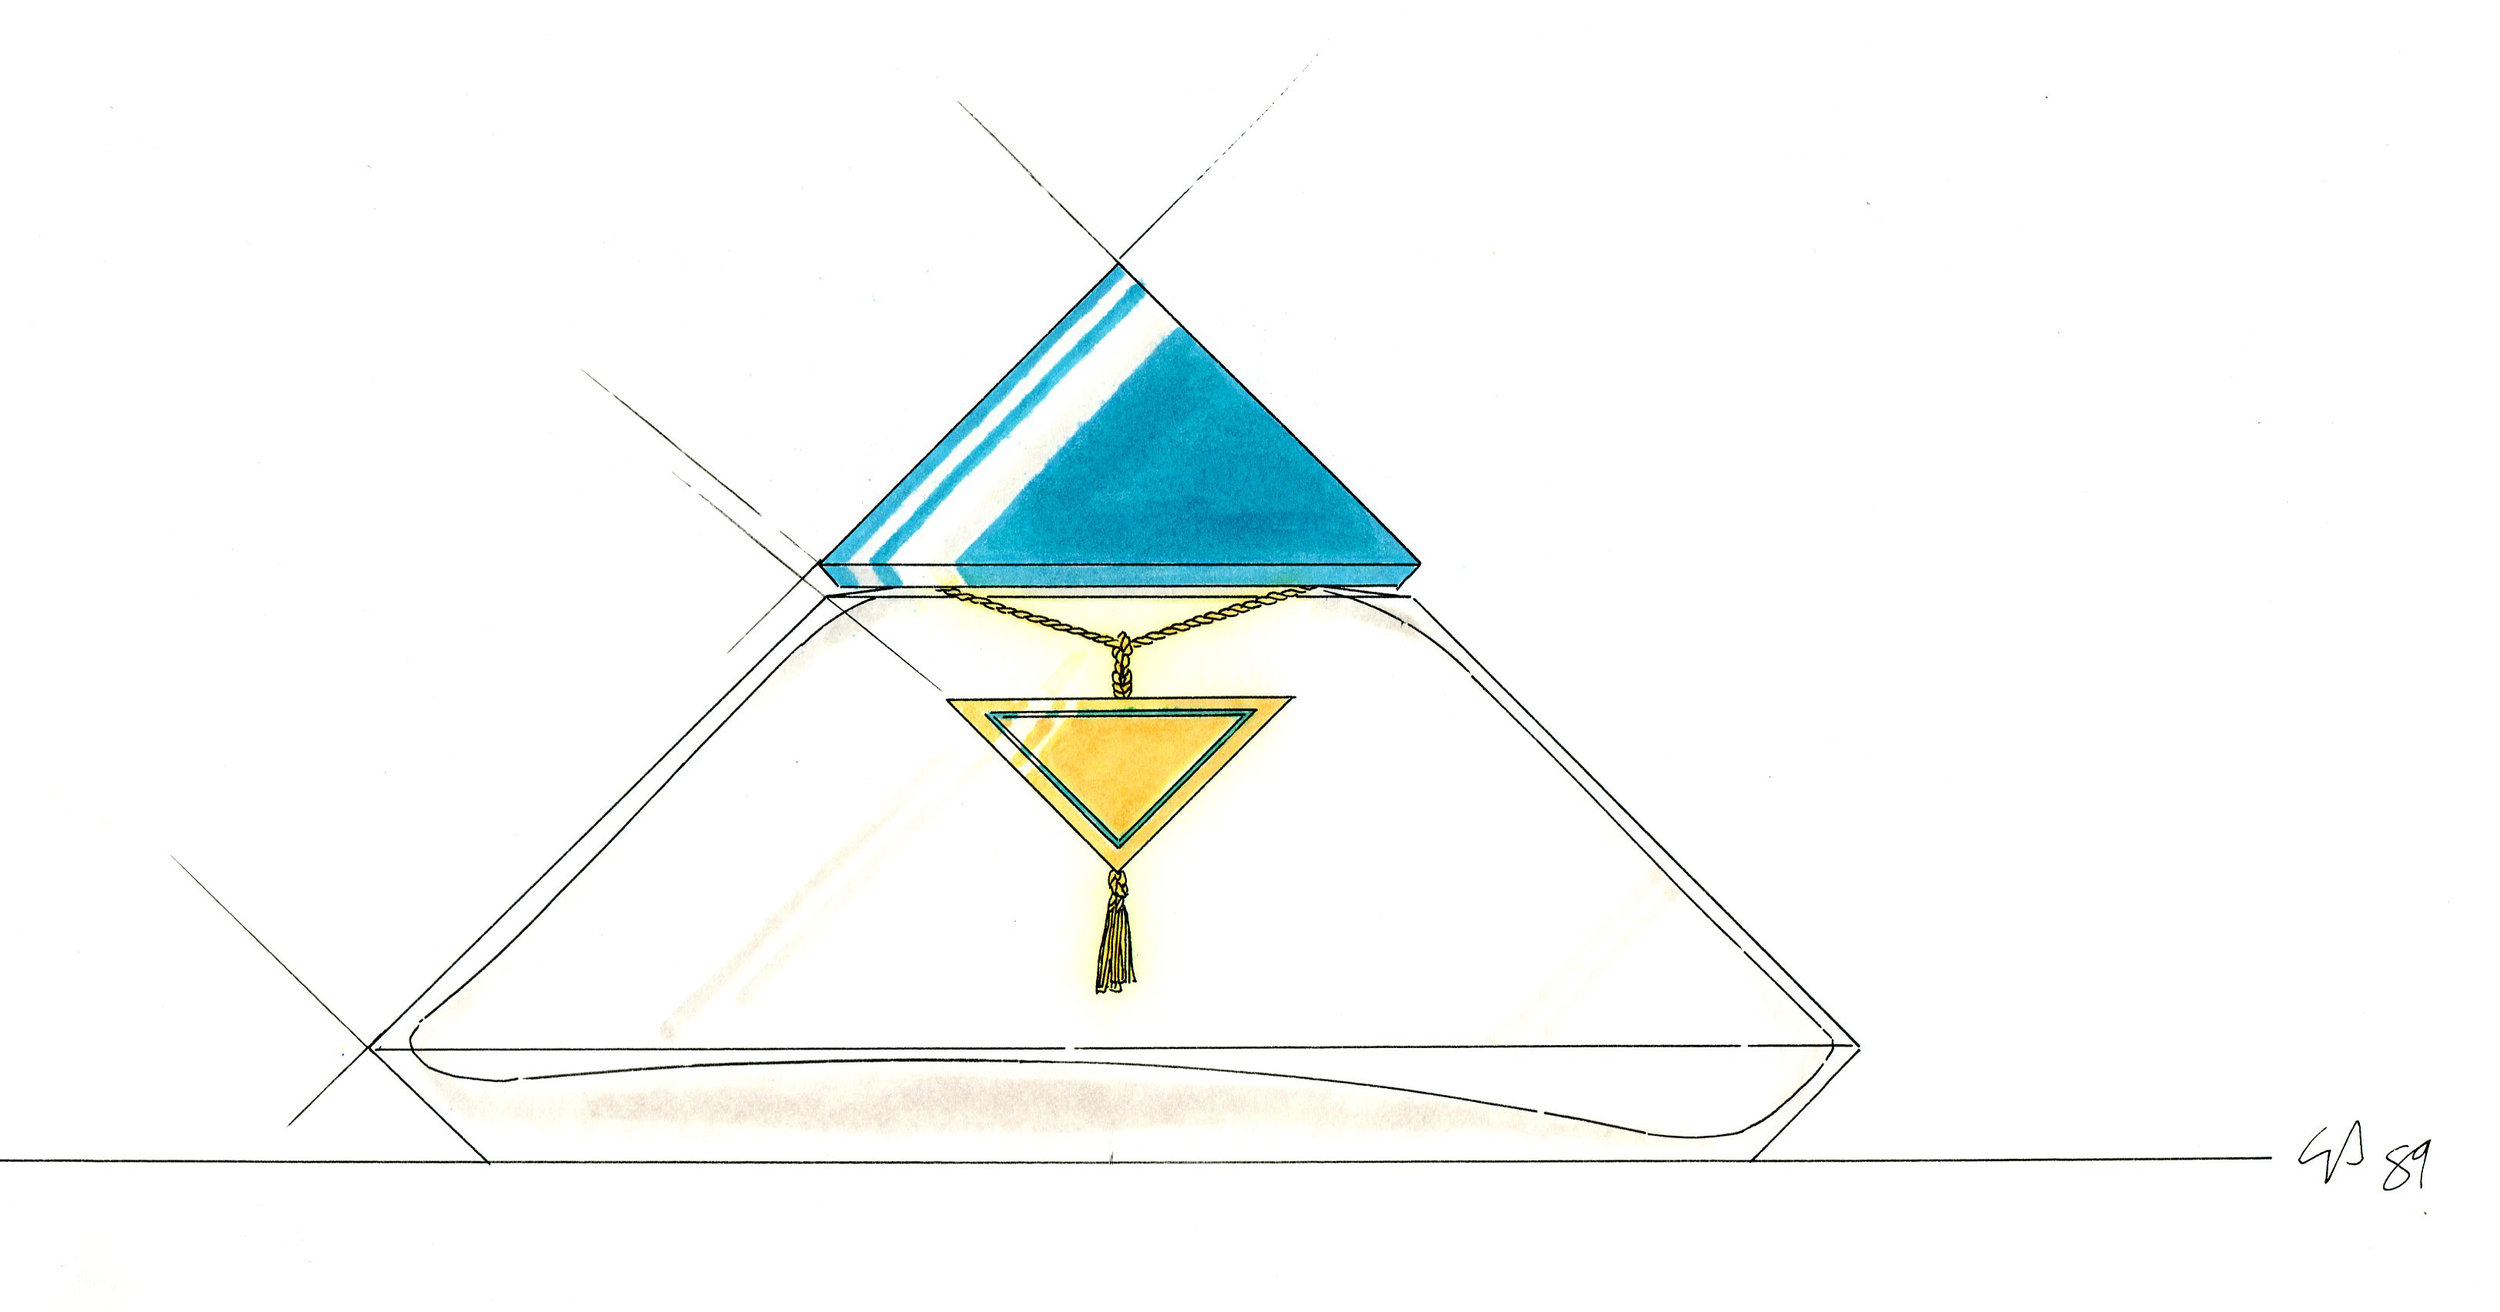 PERRONE_DESIGN_Pyramide Bottle_01.jpg